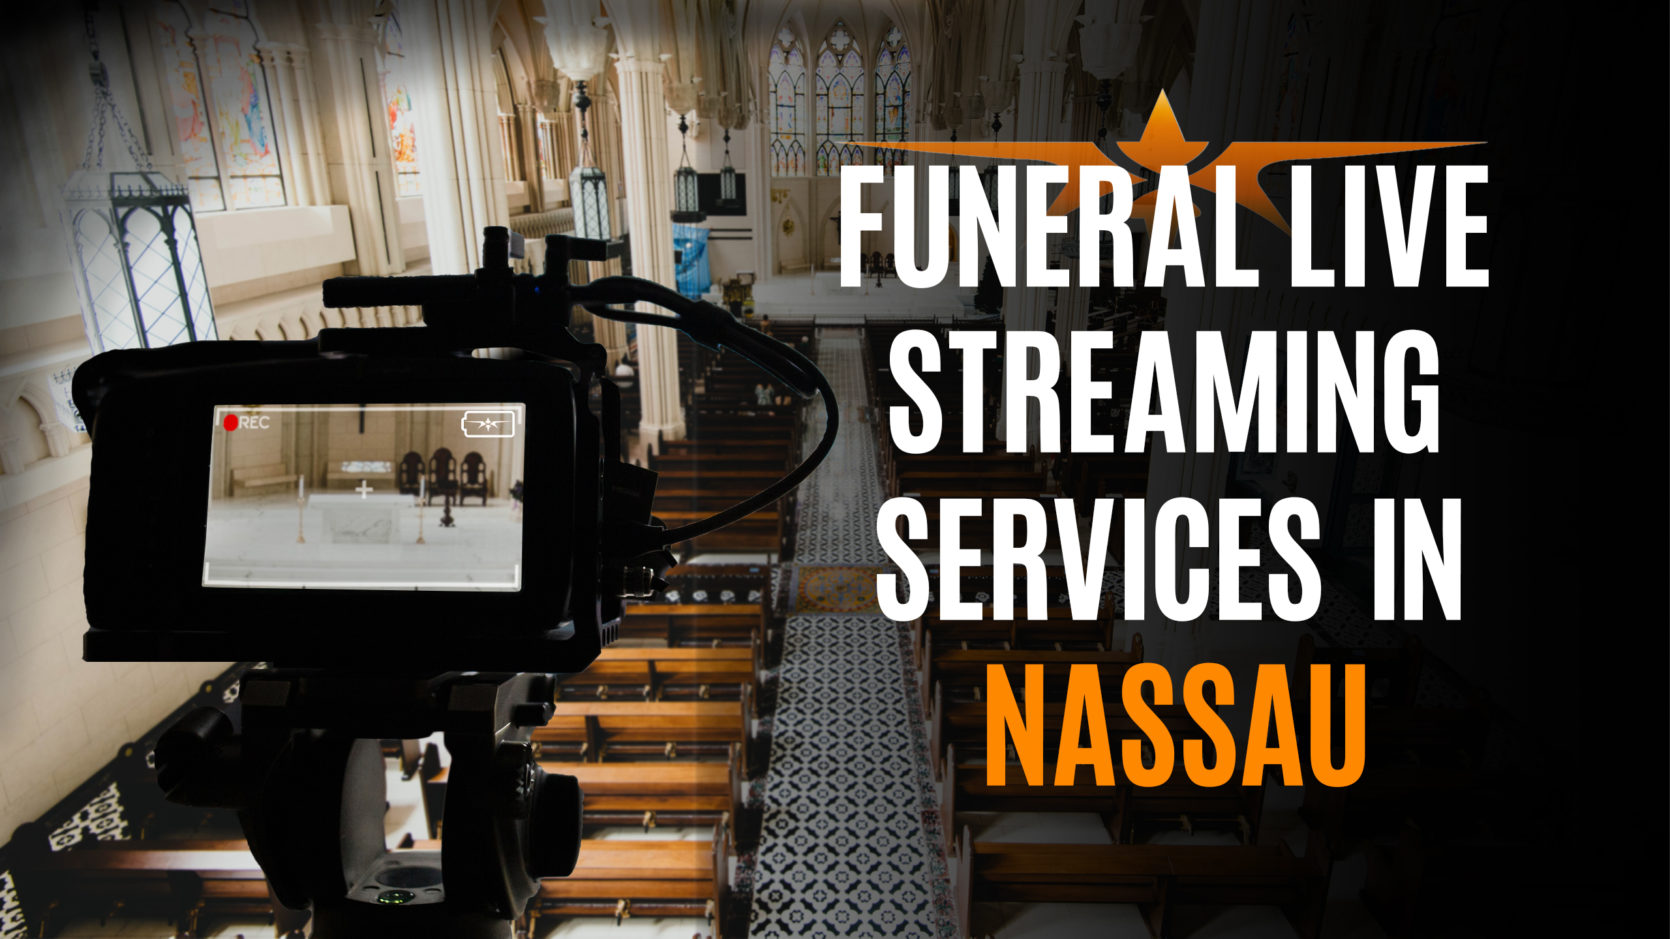 Funeral Live Streaming Services in Nassau